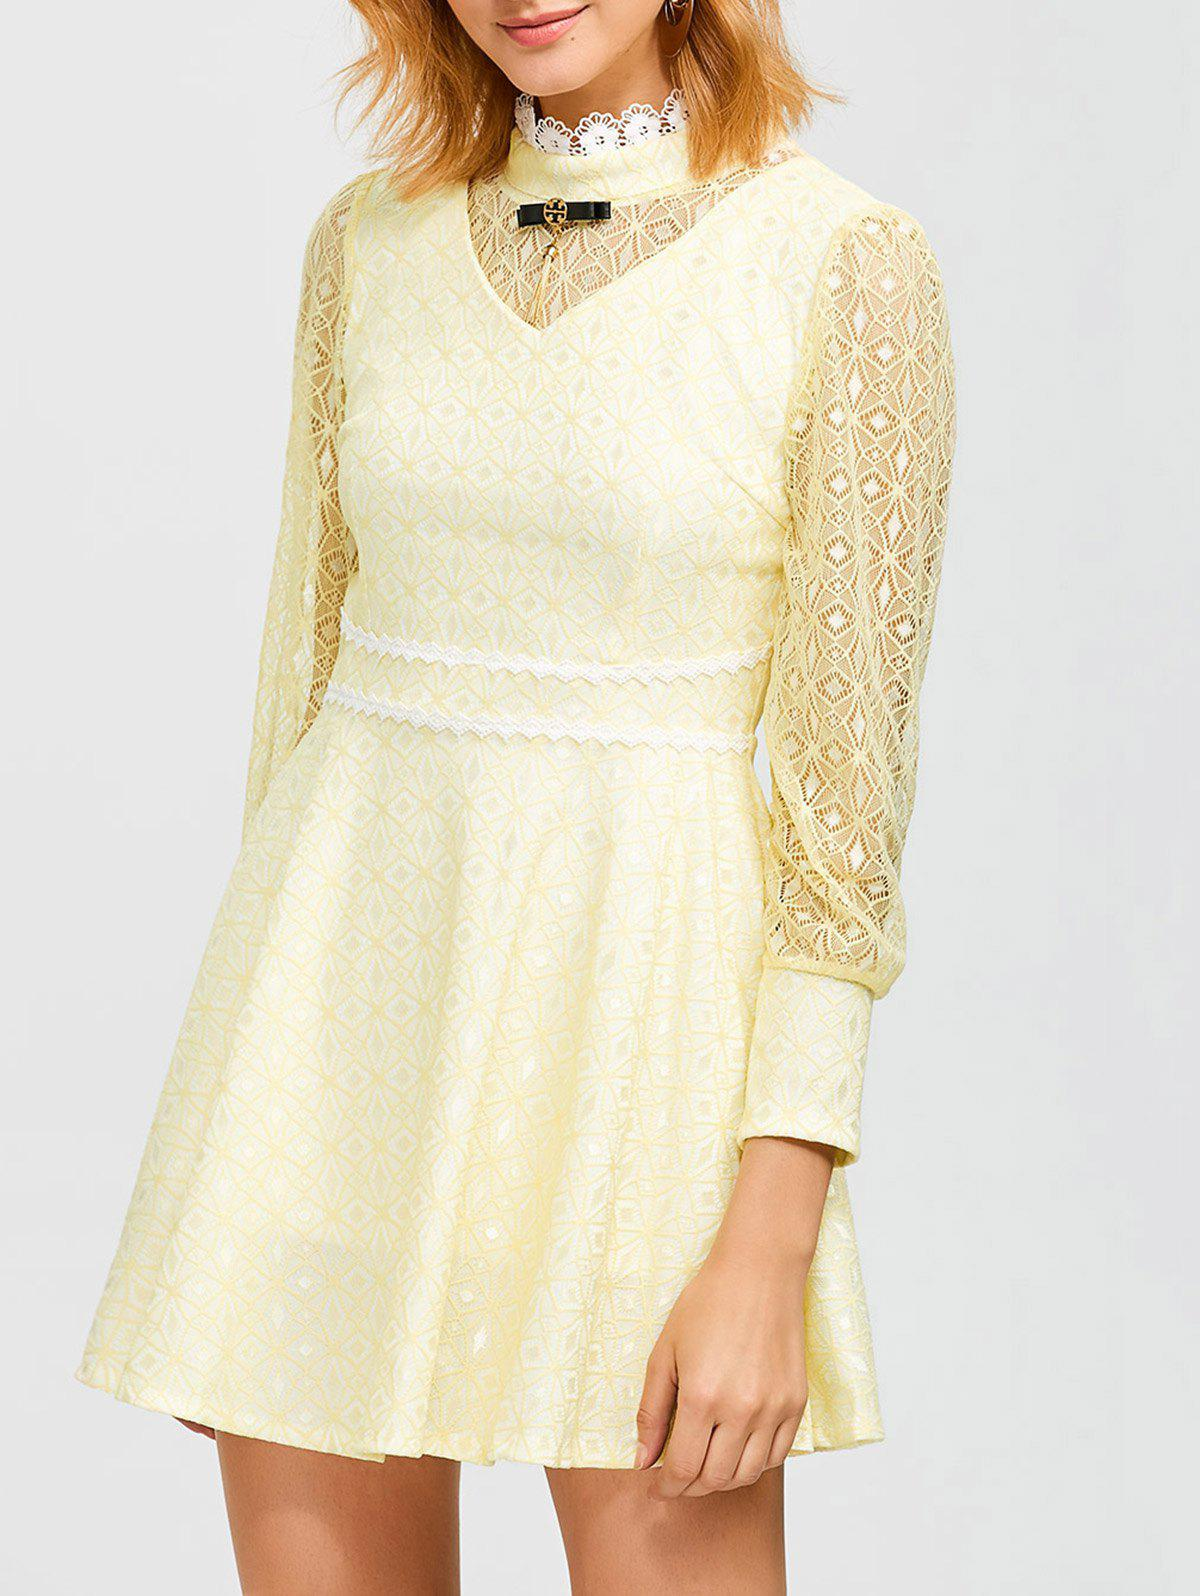 Hot Sheer Lace Openwork Mini  Dress